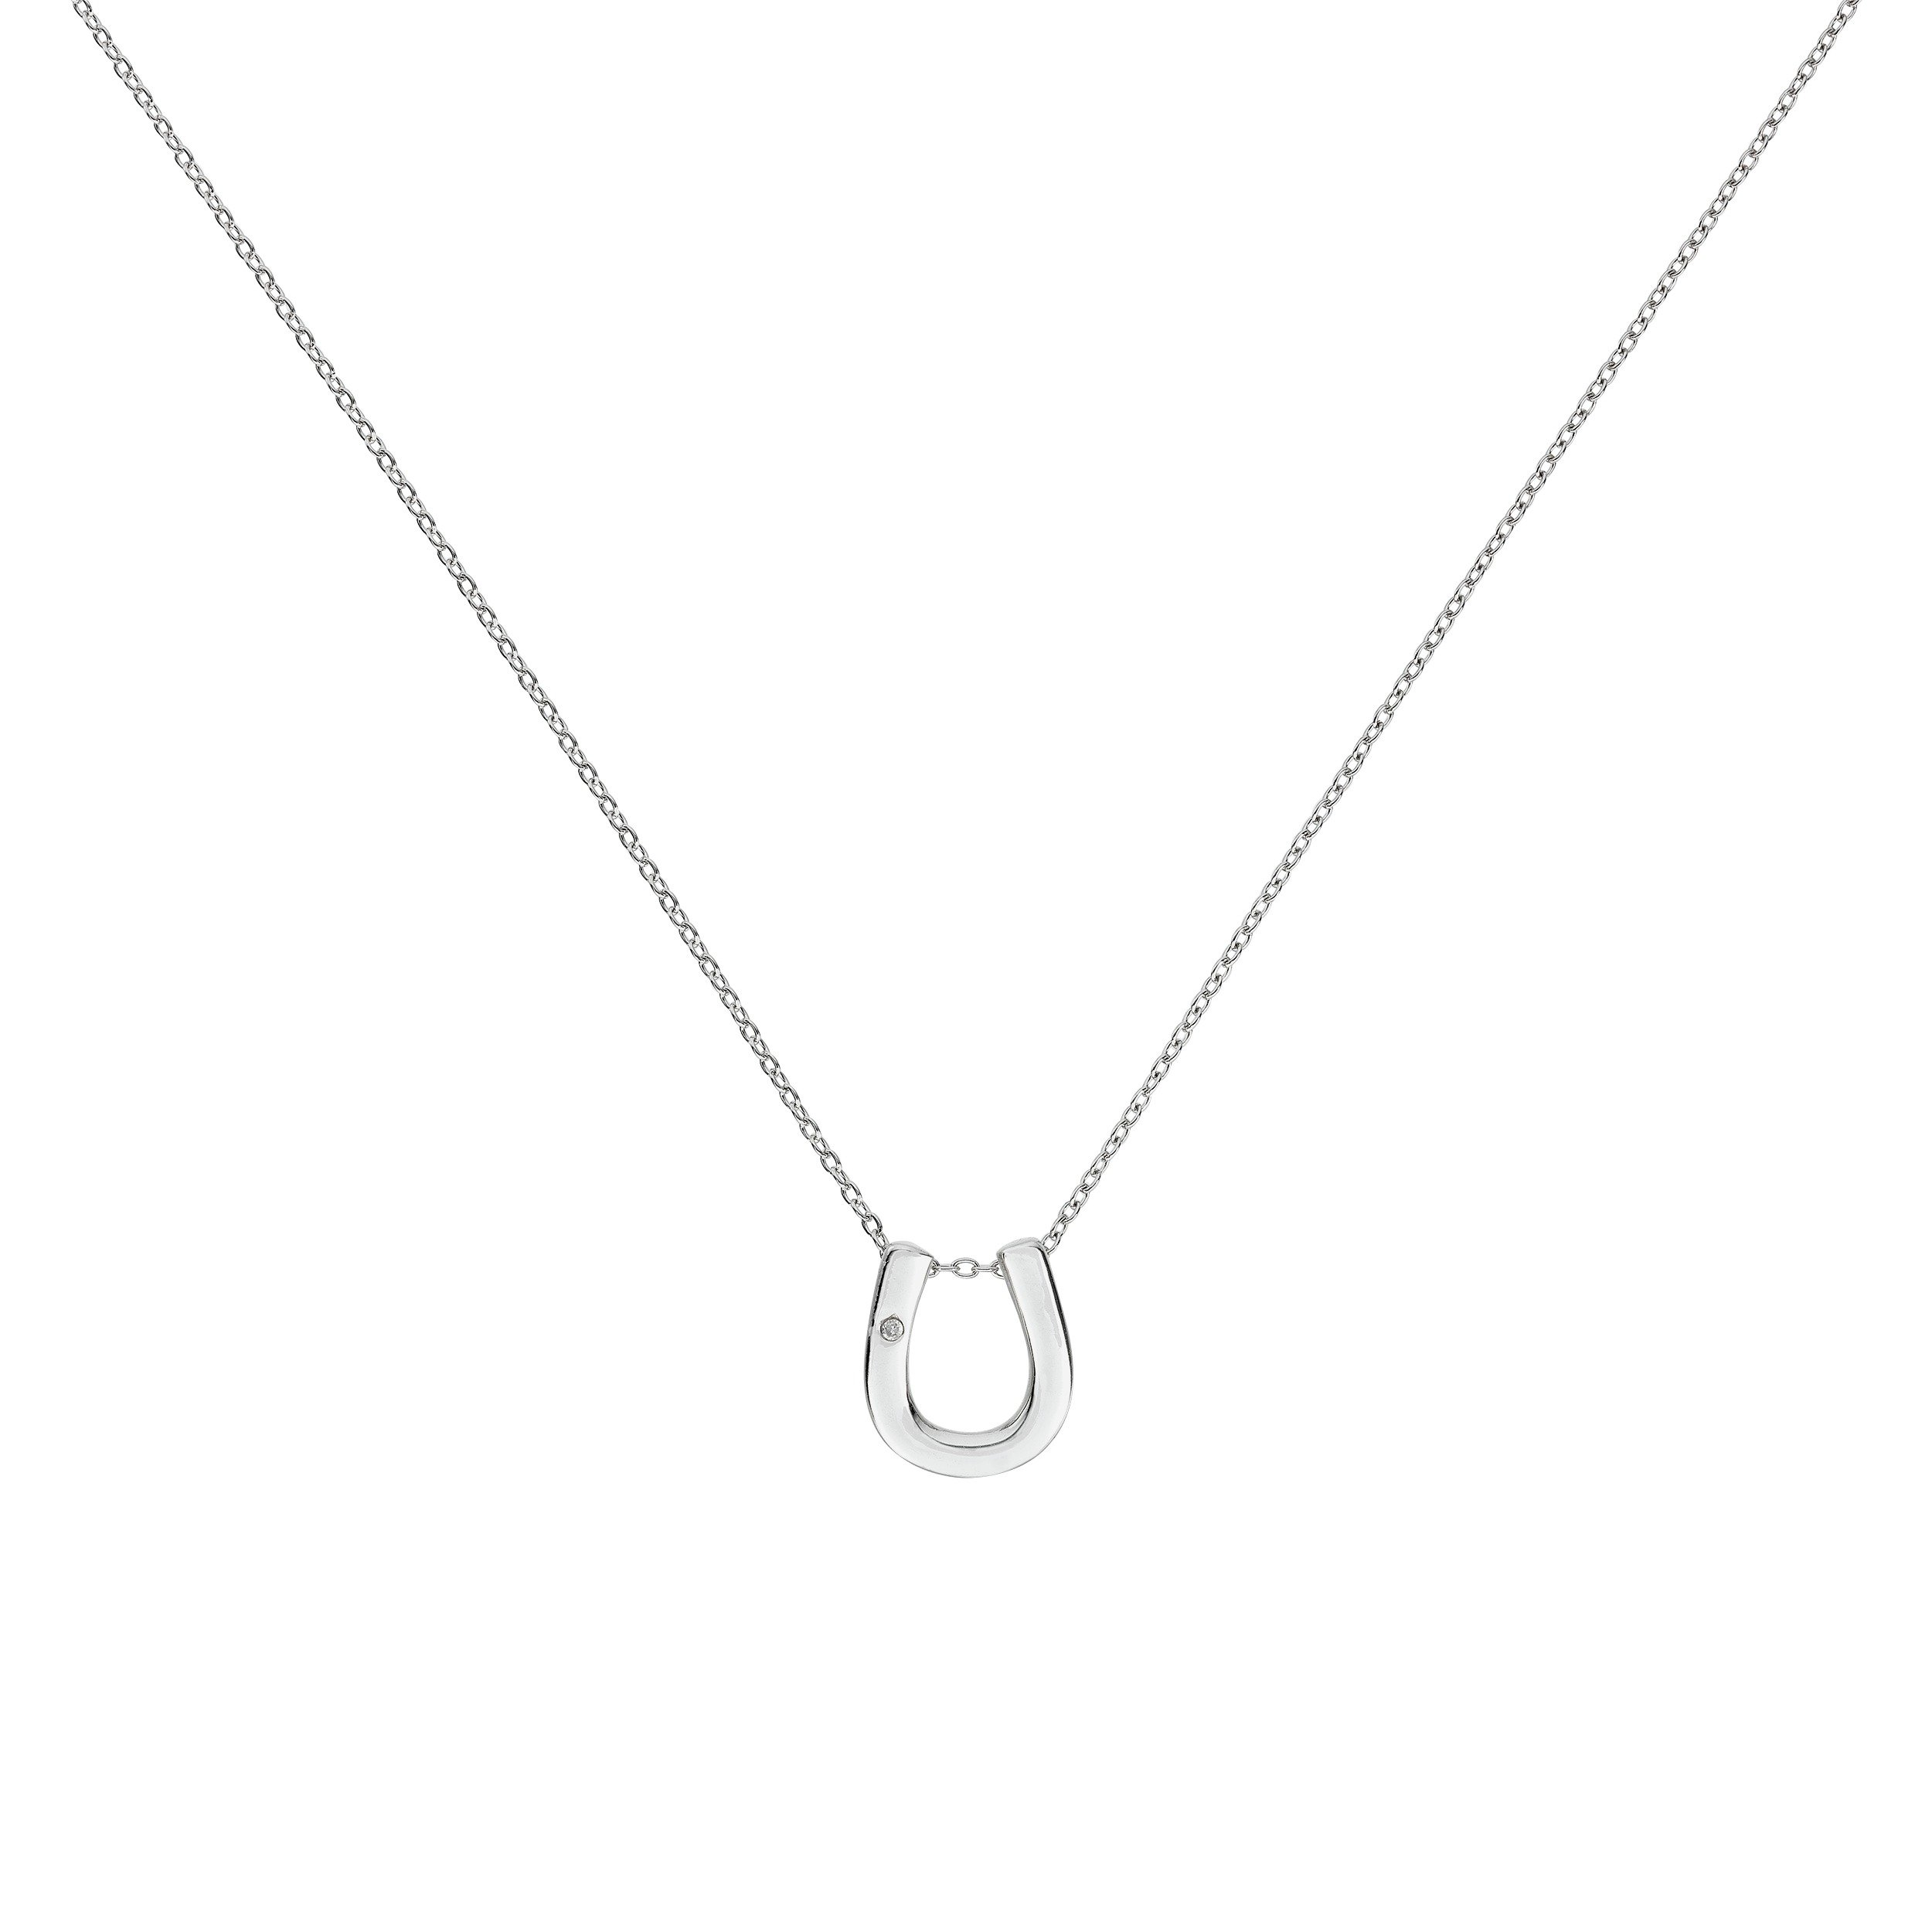 Image of Accents by Hot Diamonds Sterling Silver Horseshoe Pendant